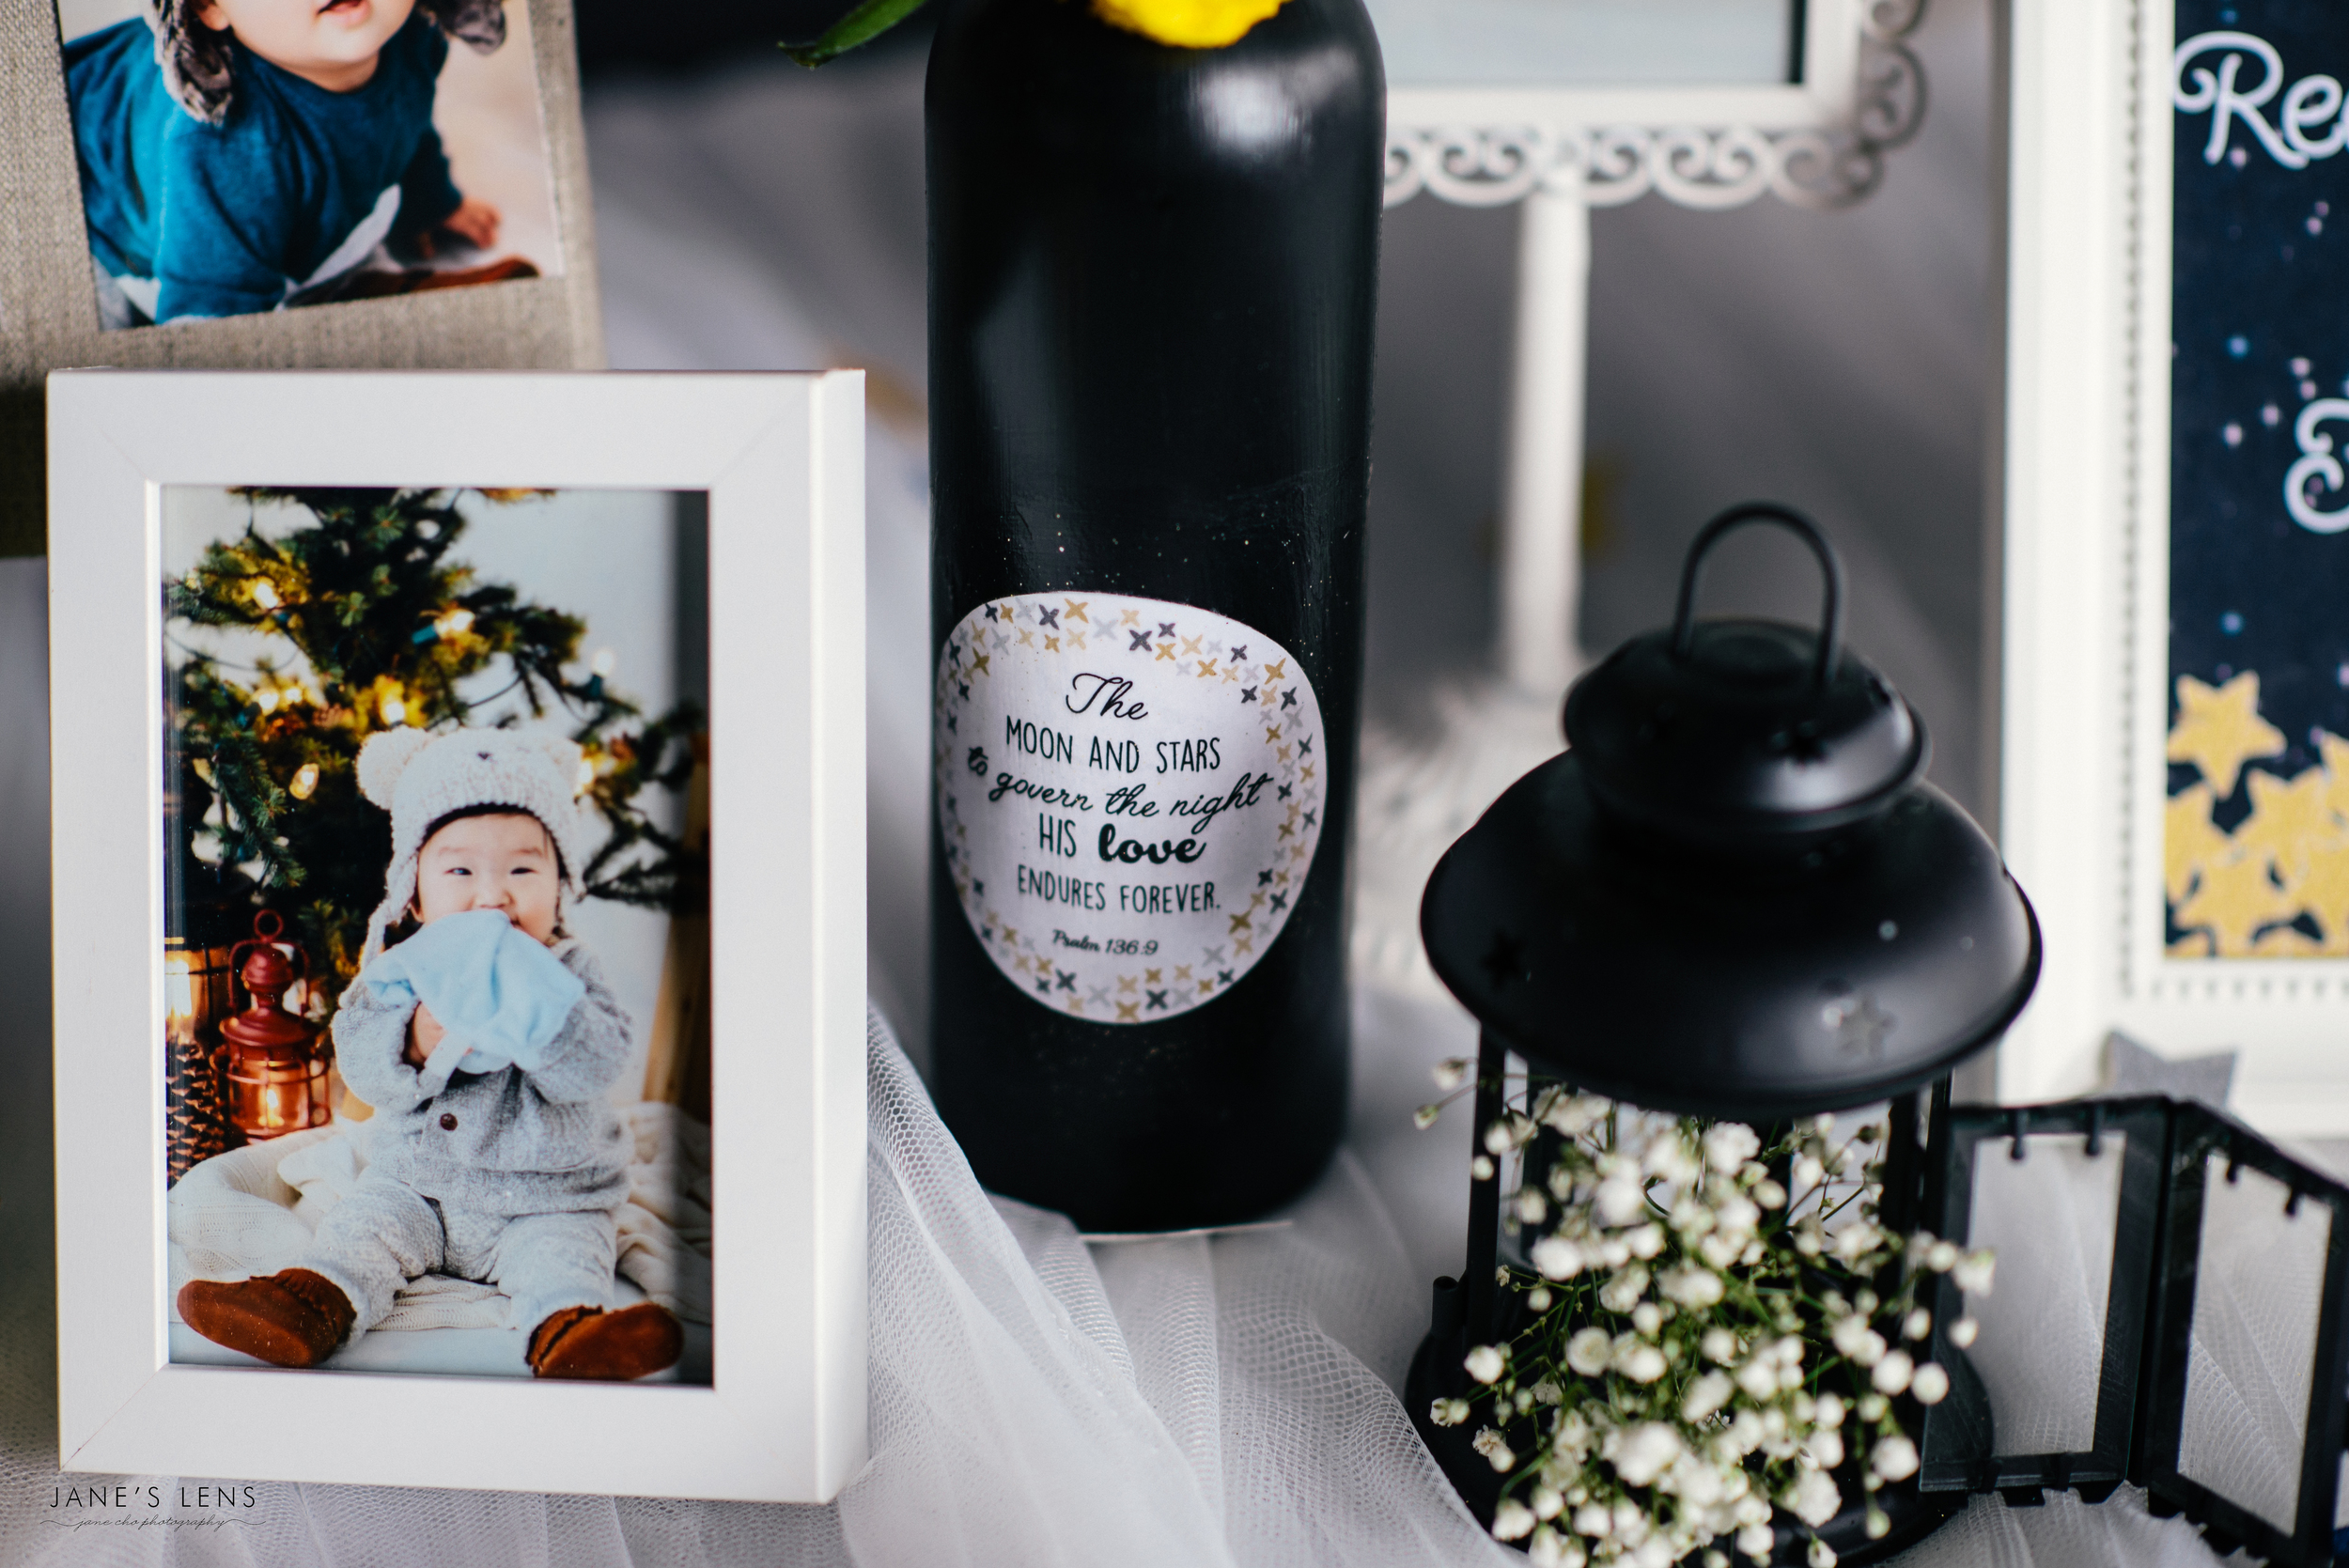 Twinkle Twinkle Little Star Dohl Dohlsang Welcome Table Chalkboard bottle doljanchi.jpg